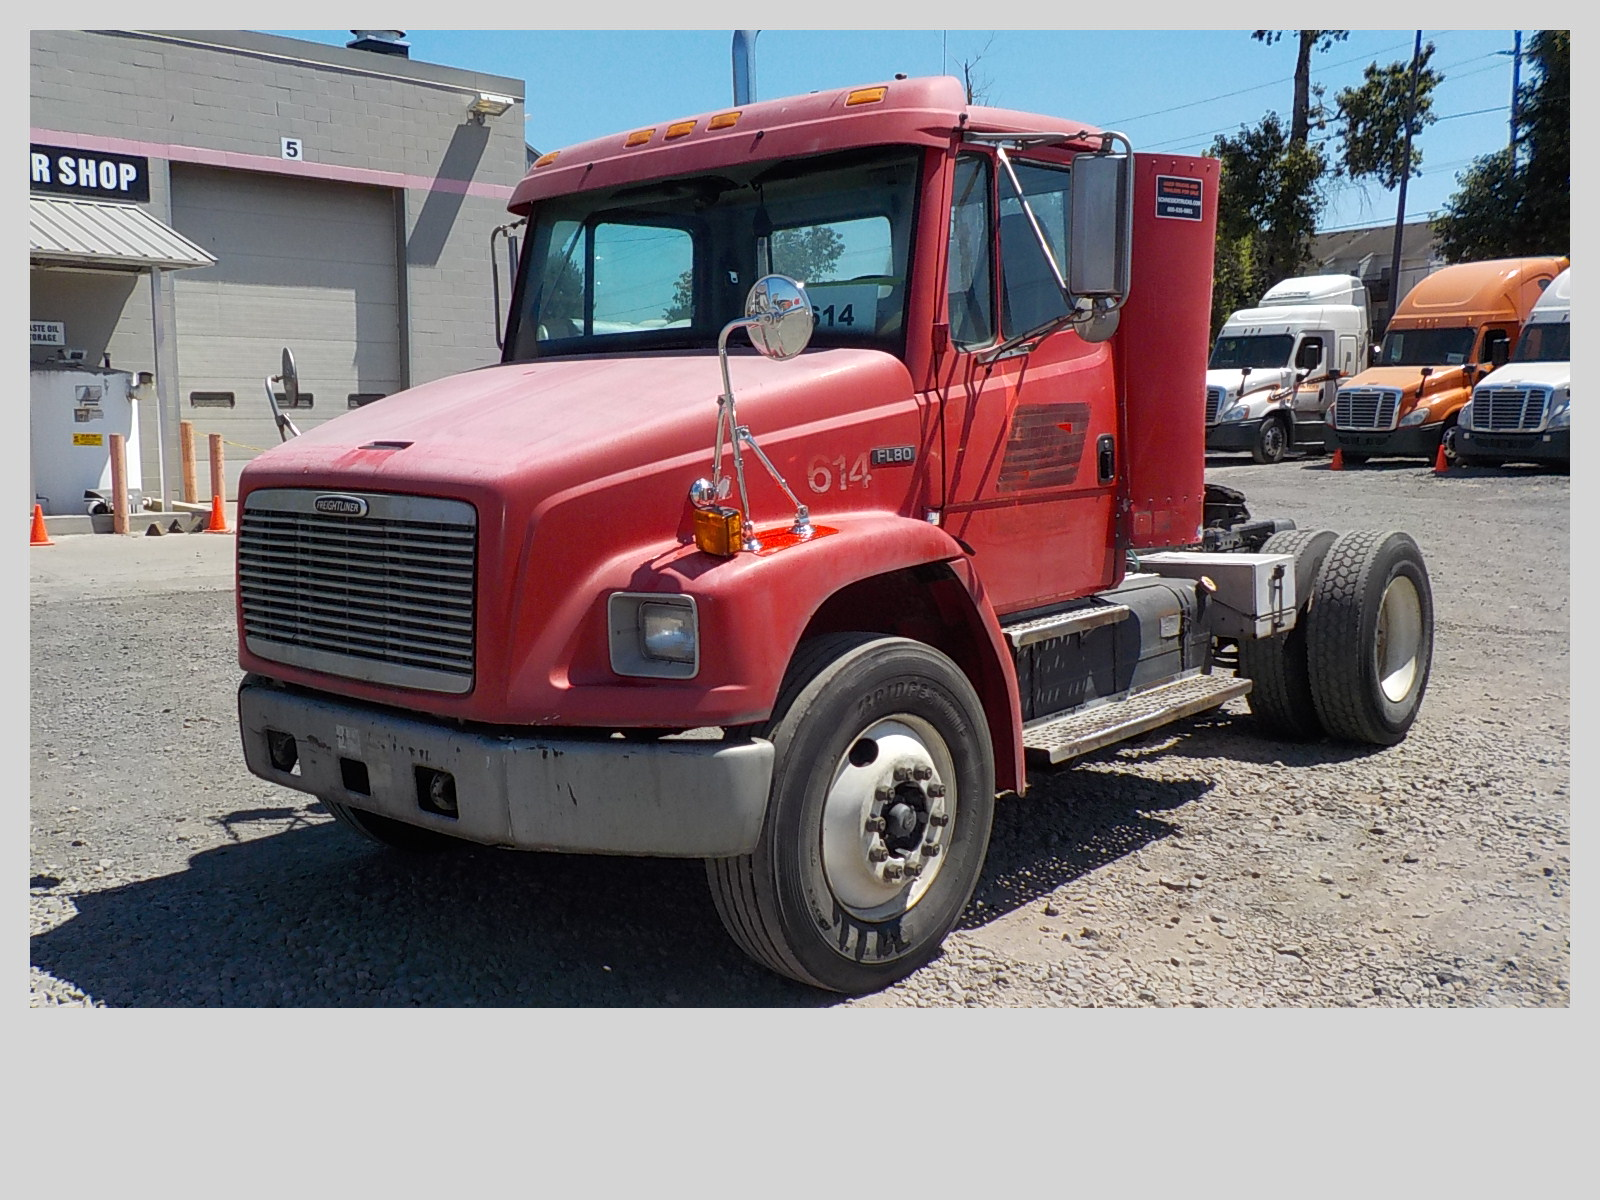 USED 1999 FREIGHTLINER FL 80 DAYCAB TRUCK #129246